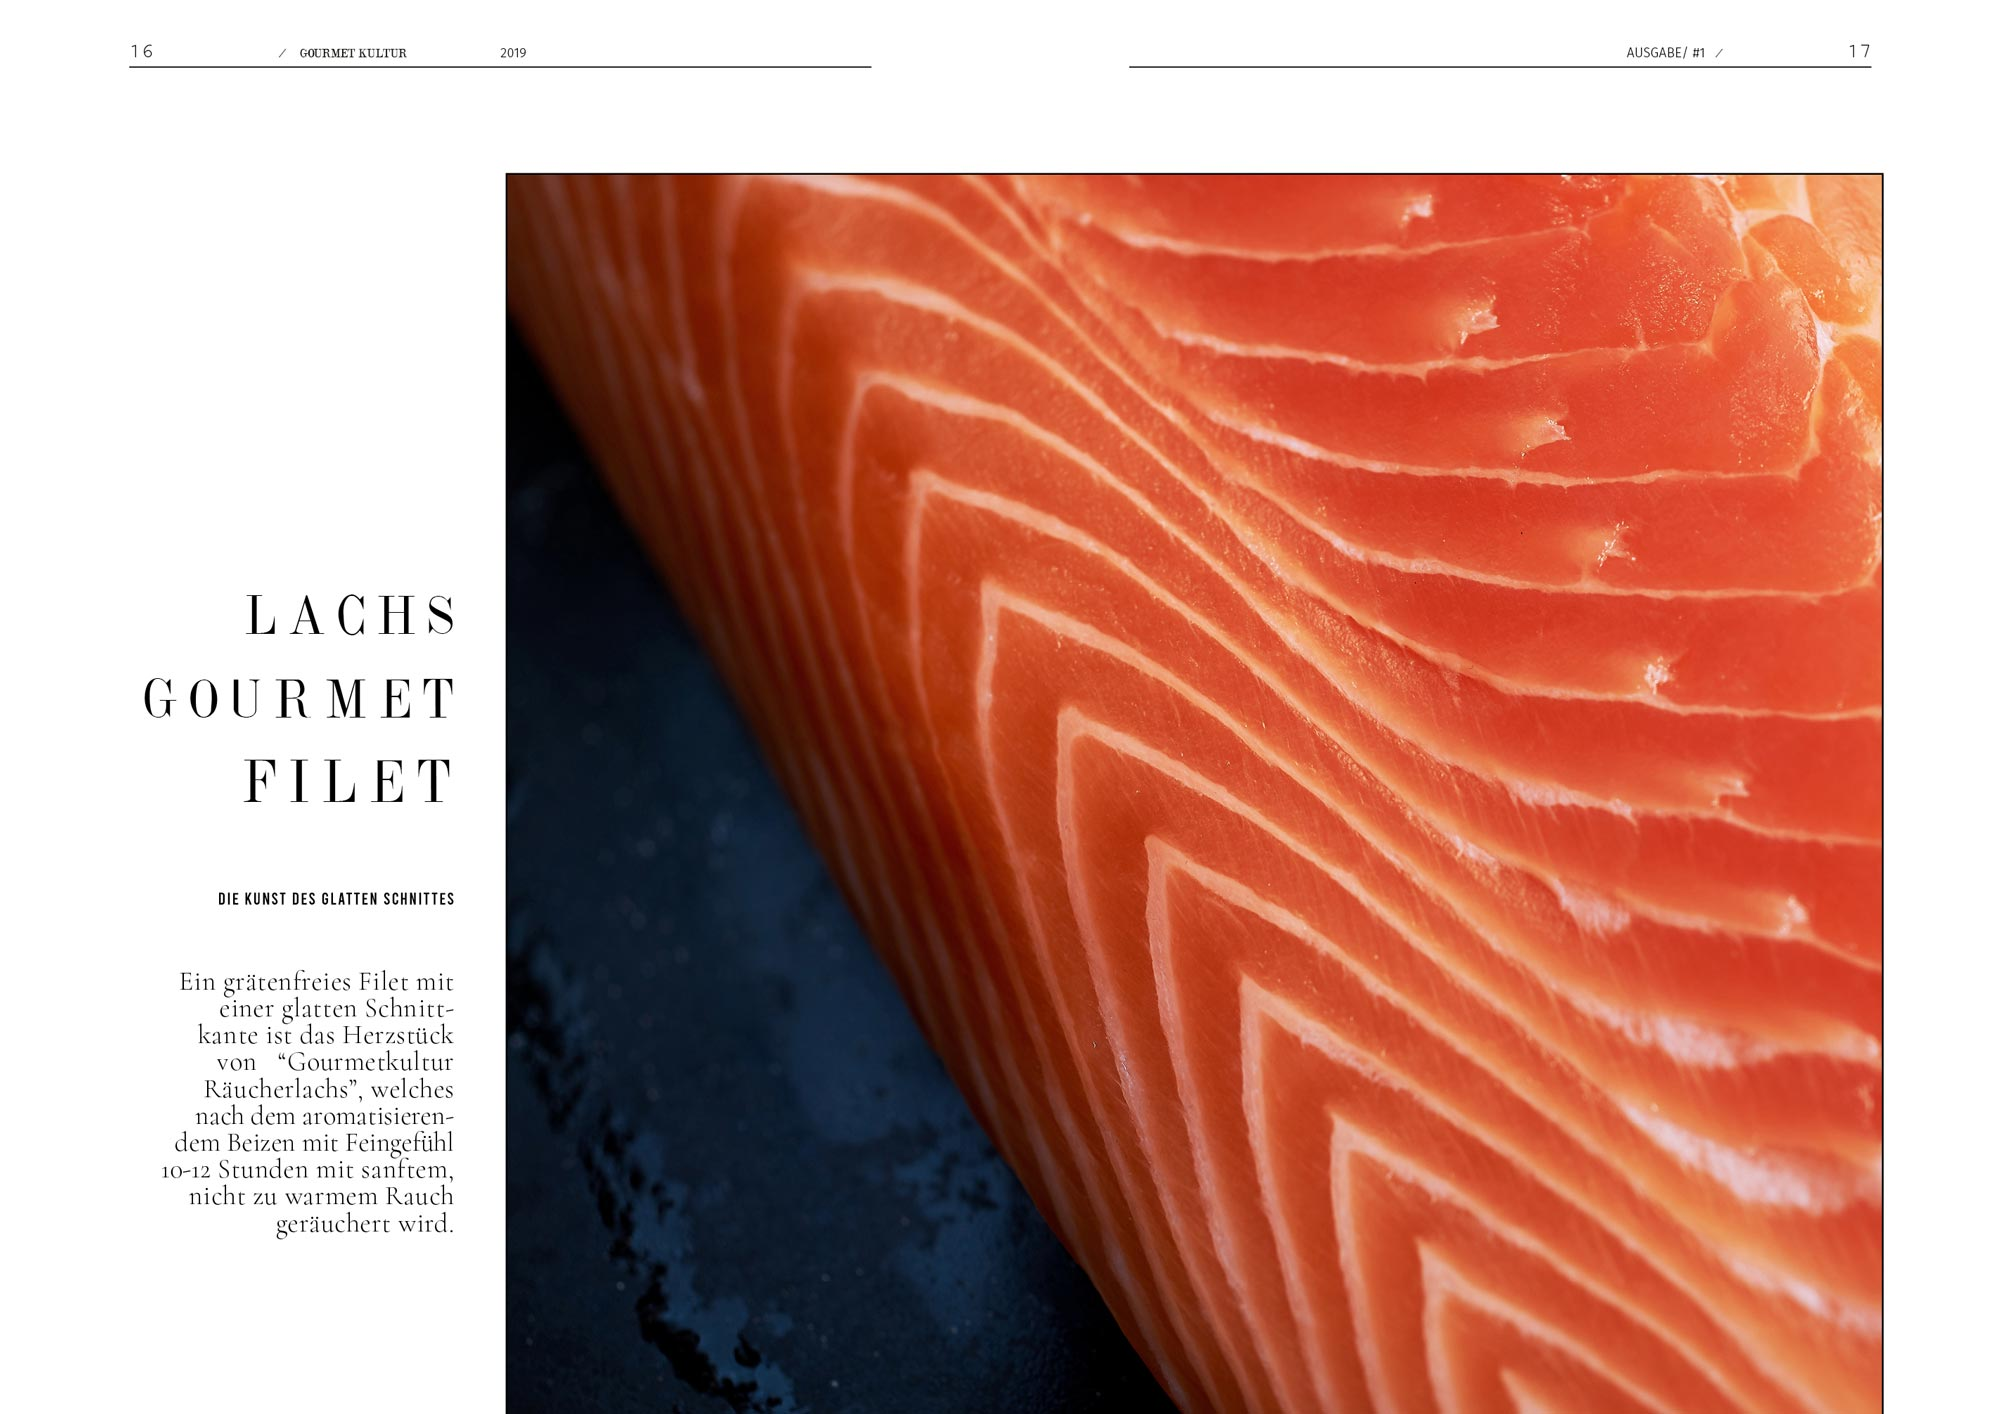 fine-food-blog-magazin-lachs-rauechern Lachs Gourmet Filet Seite